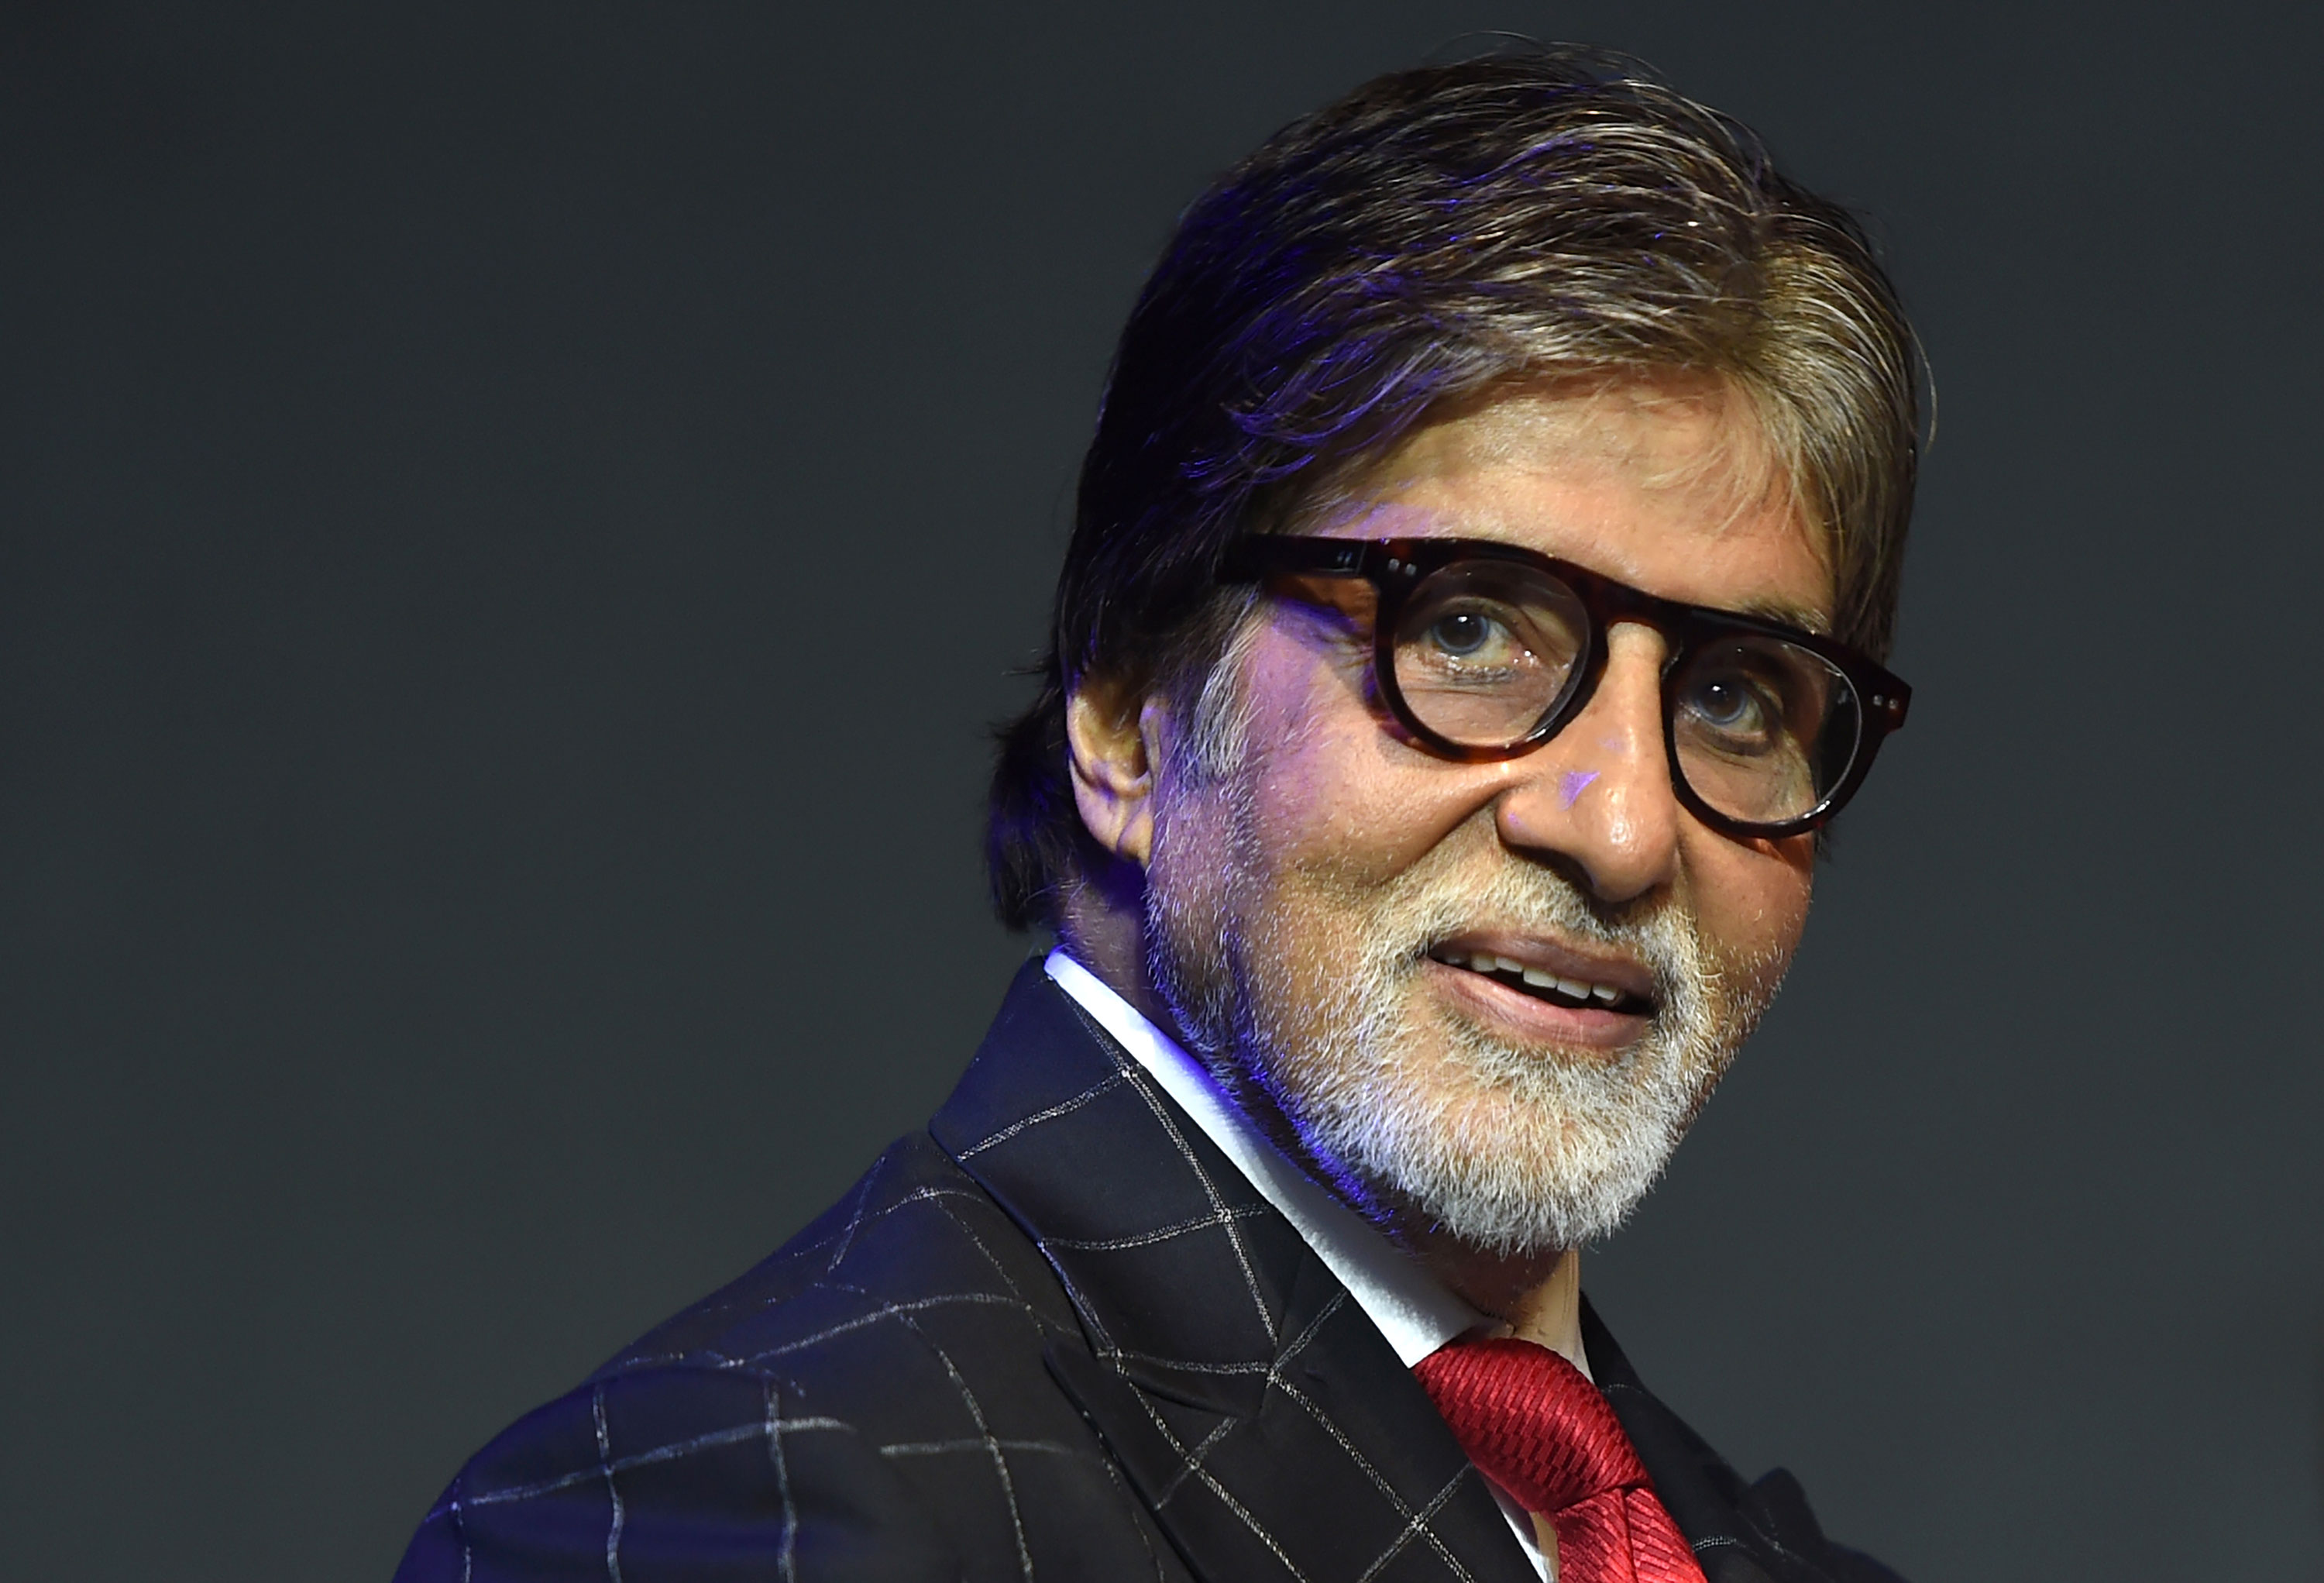 Bollywood actor Amitabh Bachchan attends a commercial event in Mumbai, India, in 2018.